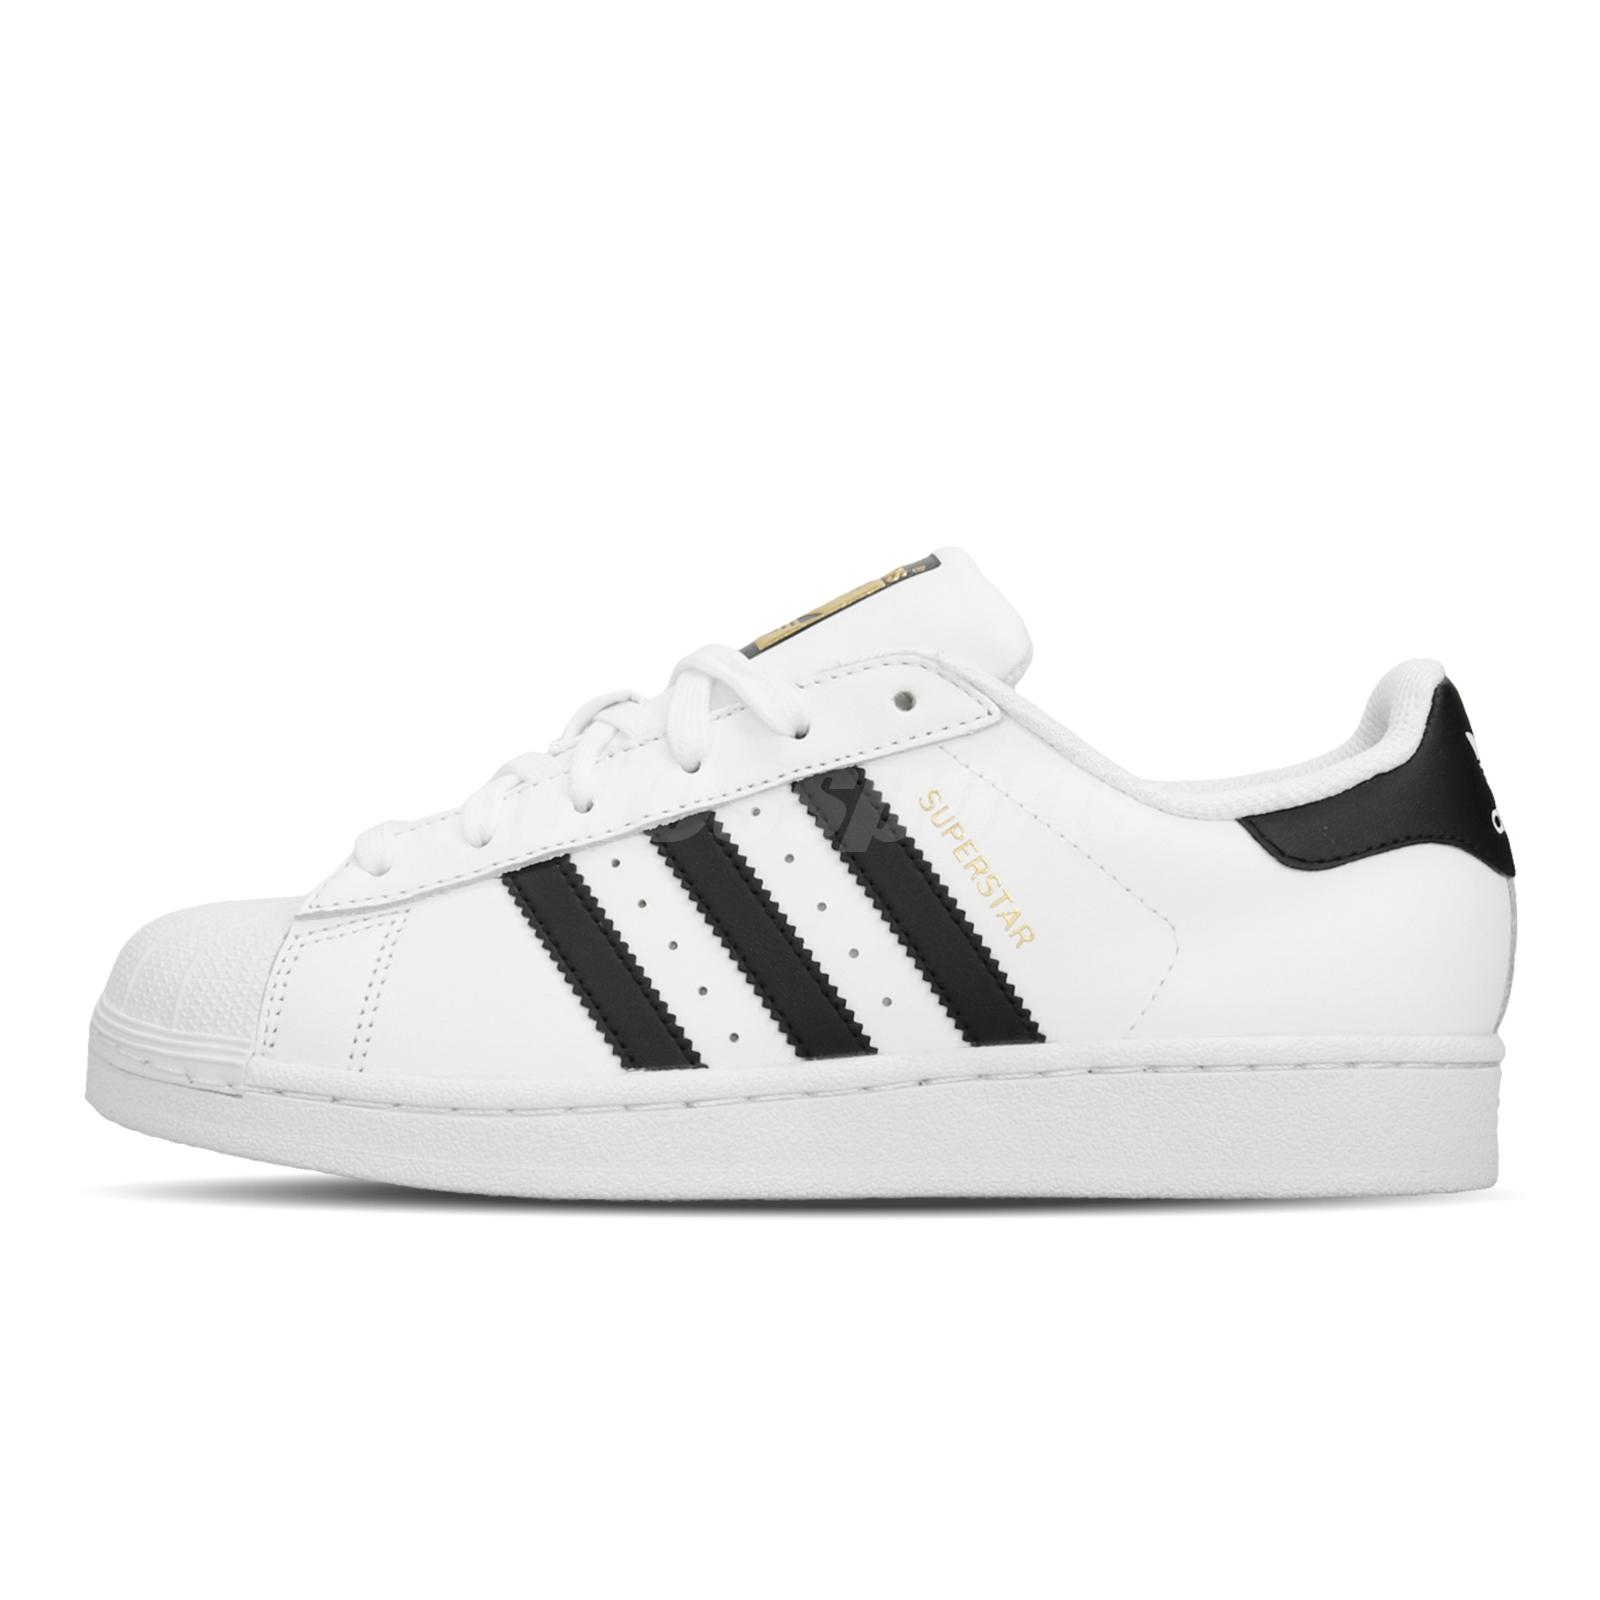 finest selection dcdb5 9467e adidas Originals Superstar White Black Gold Label Men Women Shoes Sneaker  C77124